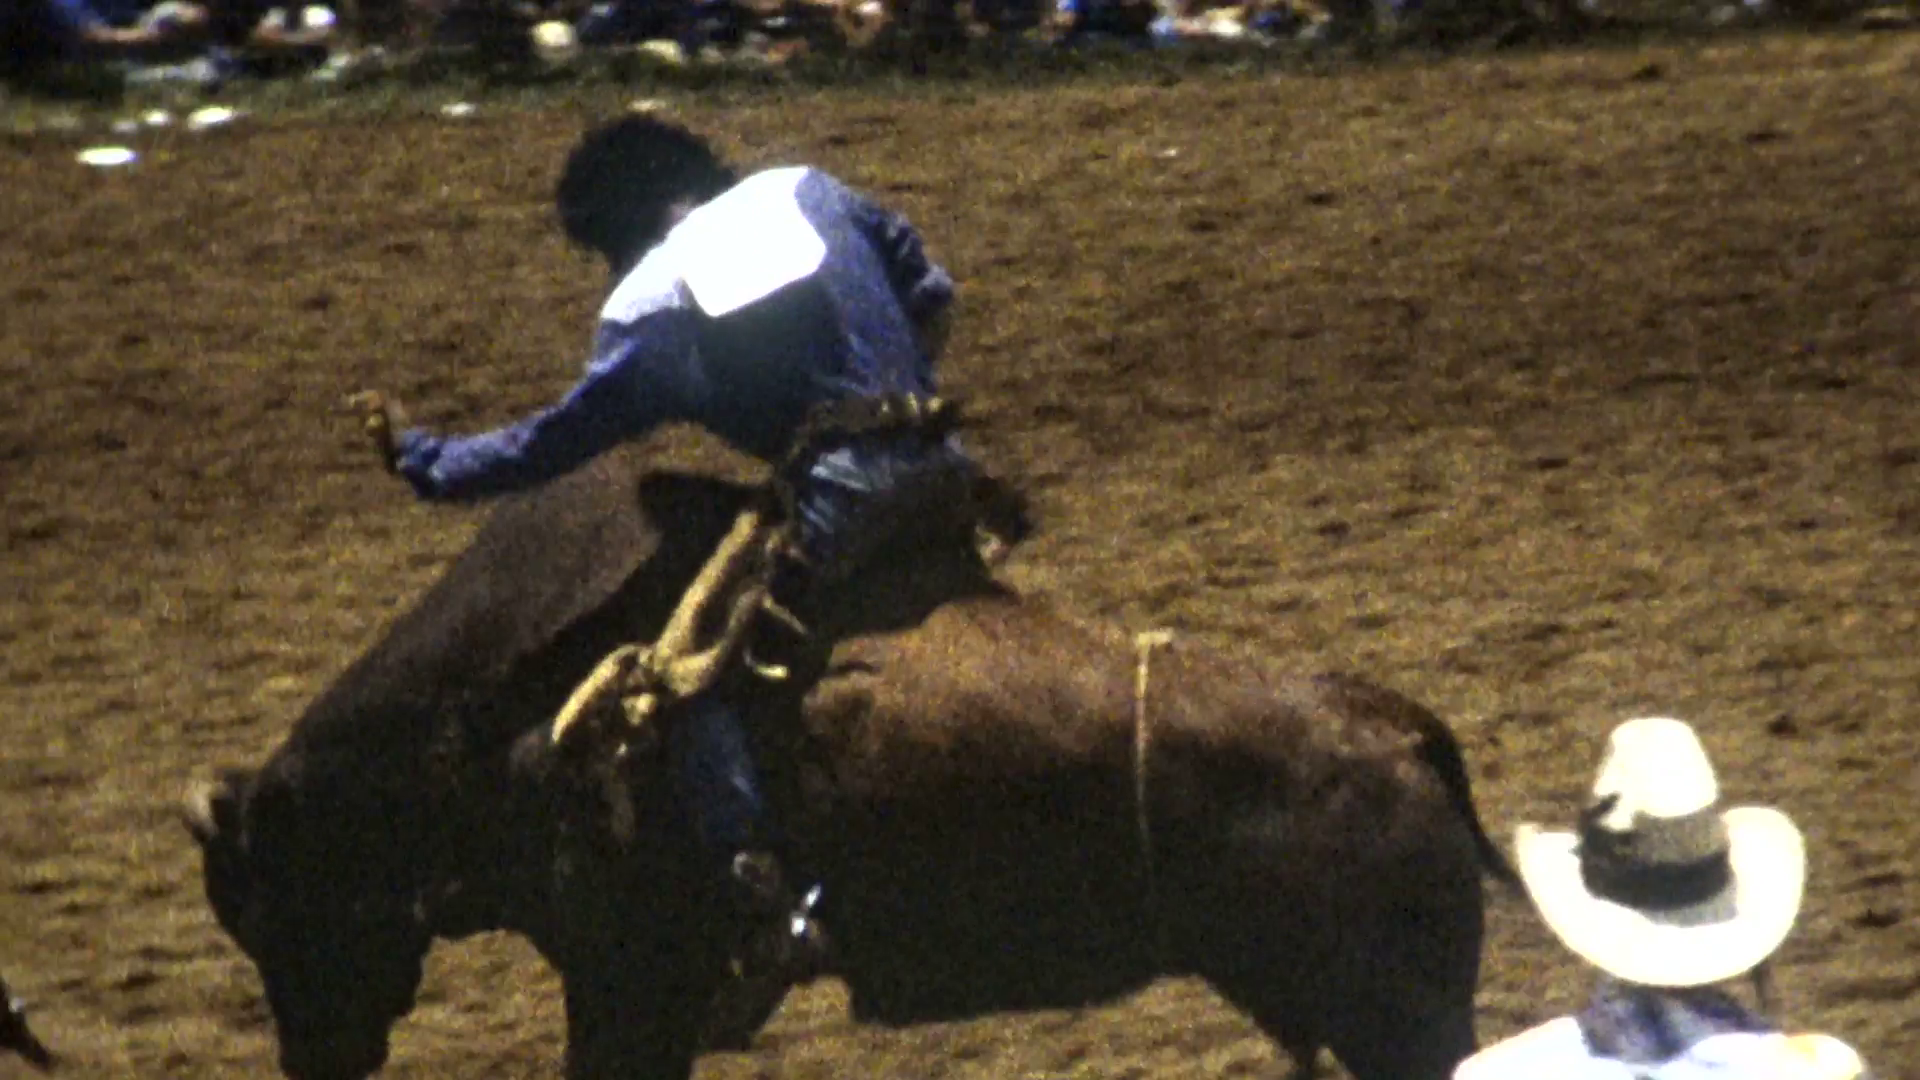 1989 Super 8mm American Western Cowboy Rodeo Bull Riding Competition u0026  Clowns 03 Stock Video Footage - VideoBlocks - Bull Riding PNG HD